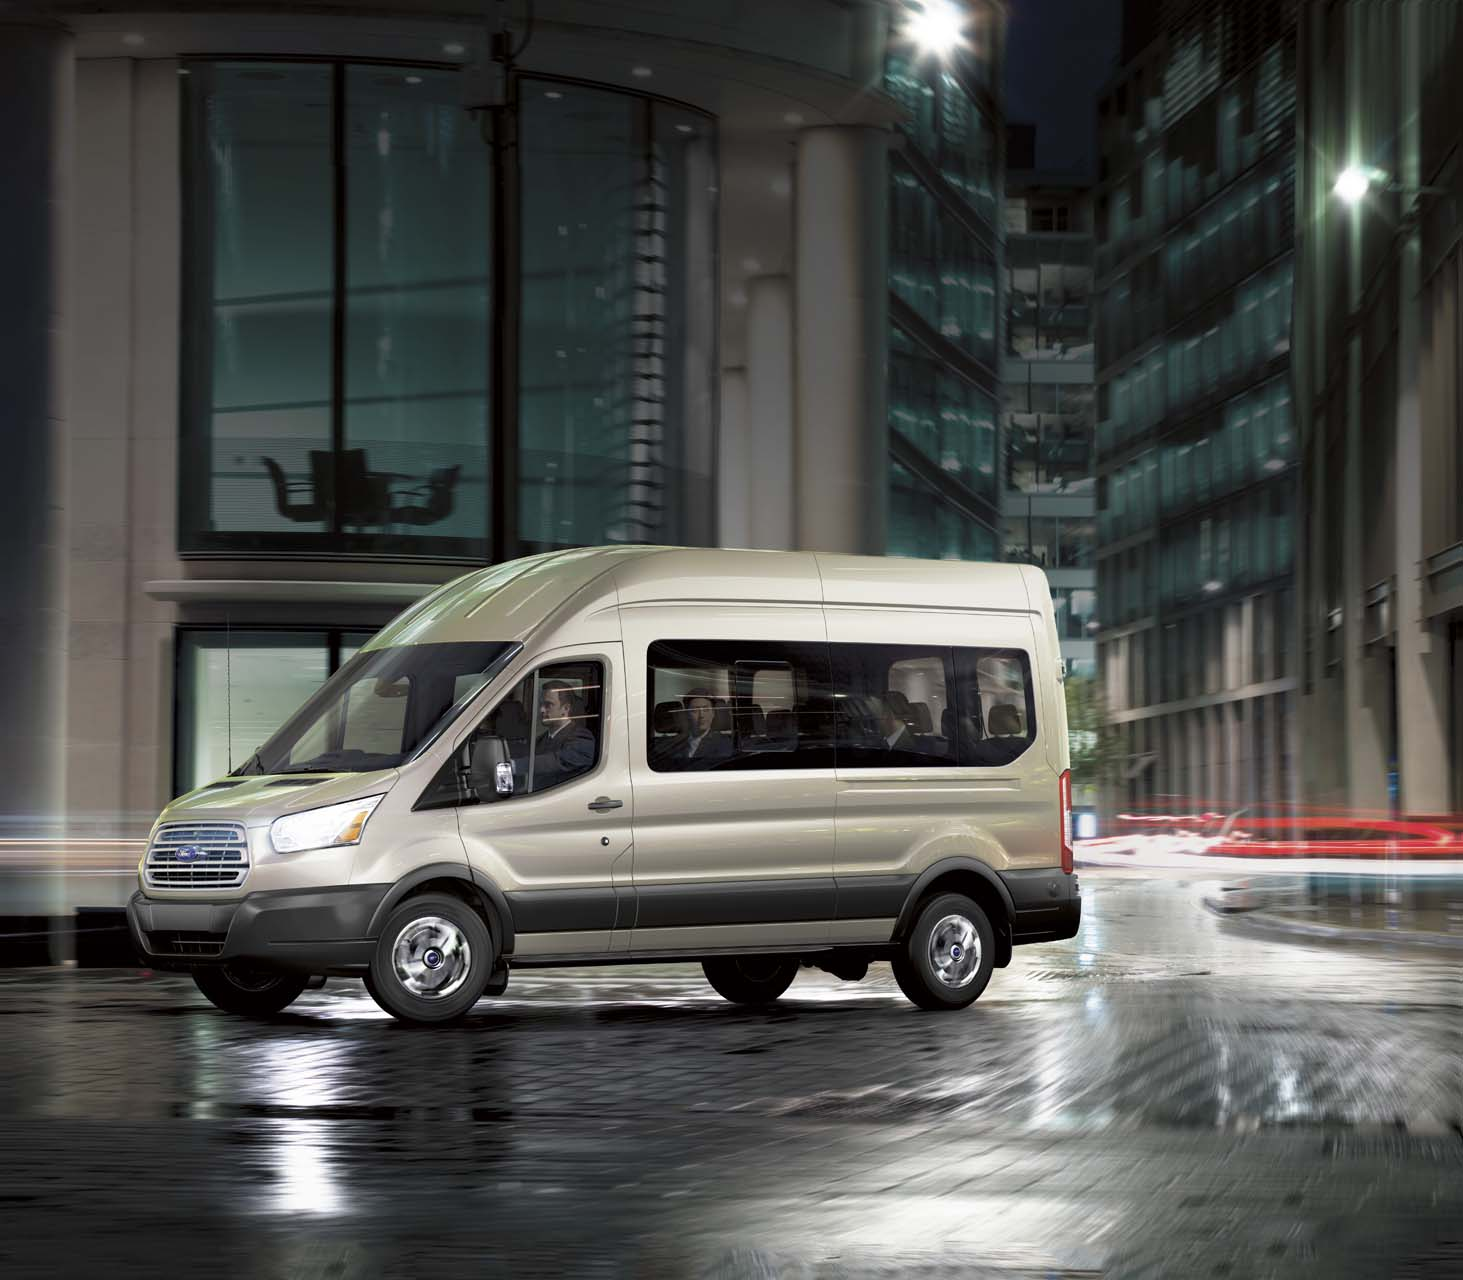 Transit Ford Van: 2019 Ford Transit Passenger Wagon Review, Ratings, Specs